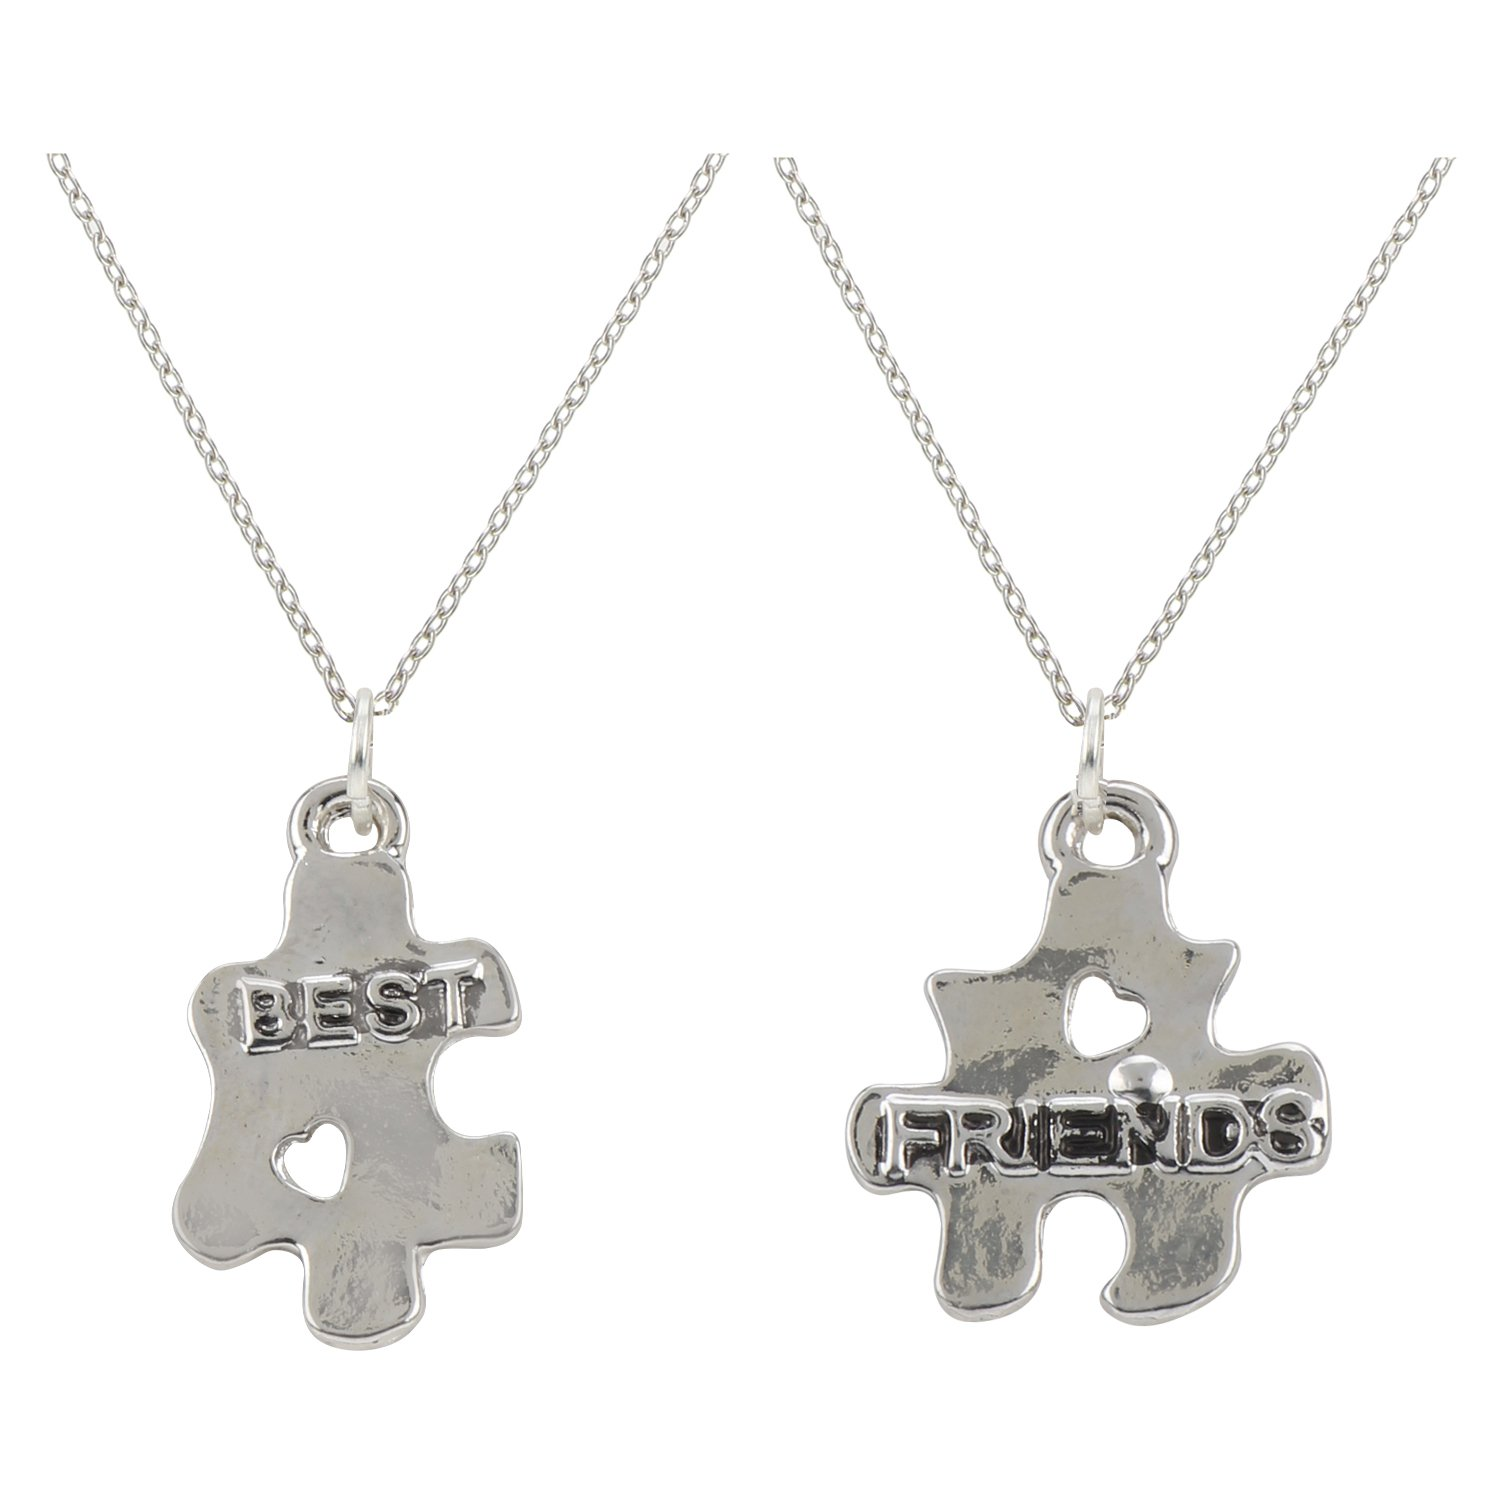 couples jewelry limoges everscribe necklace engraved name puzzle